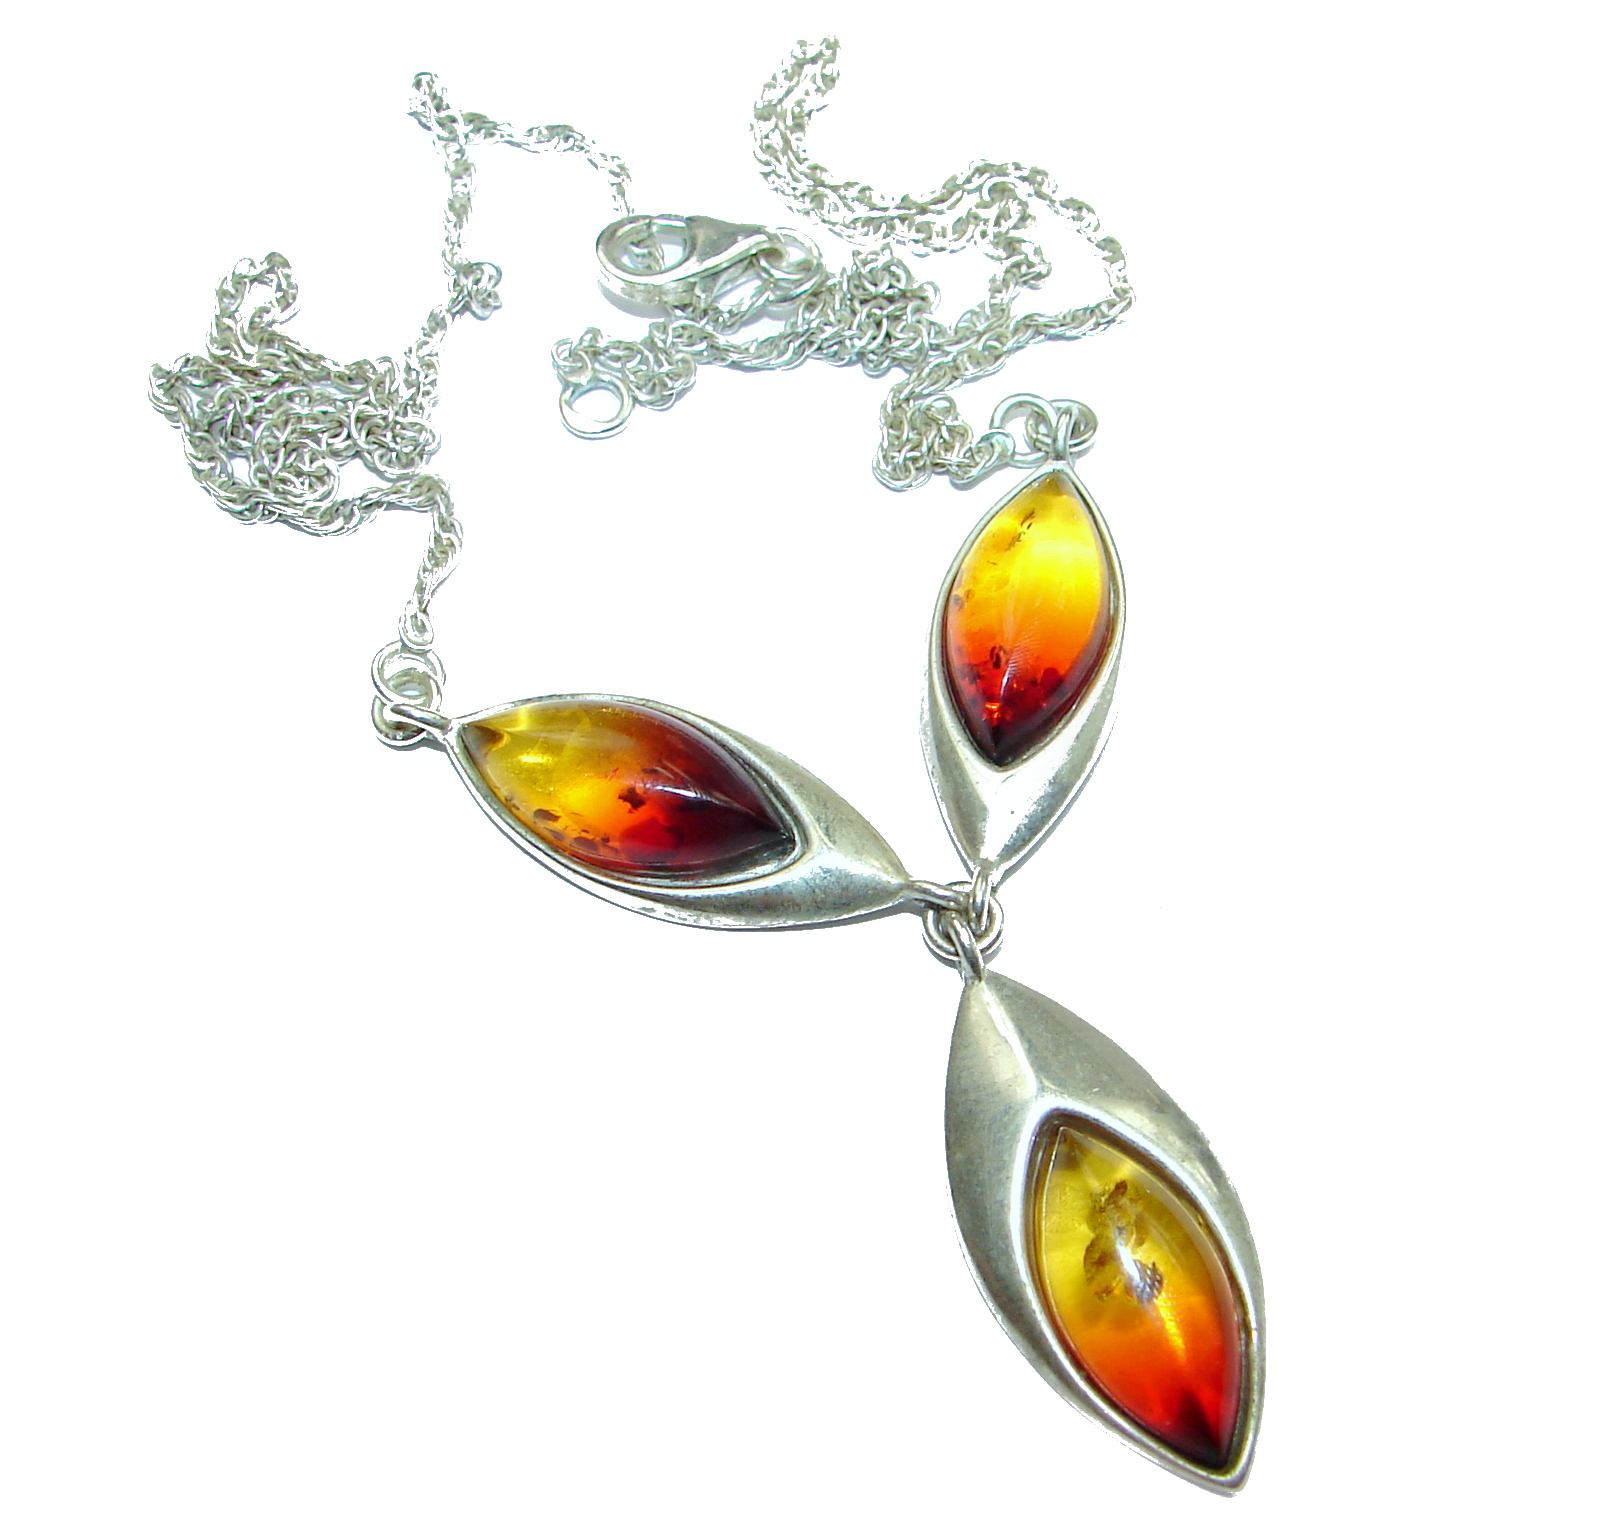 Natural Polish Amber .925 Sterling Silver handcrafted necklace